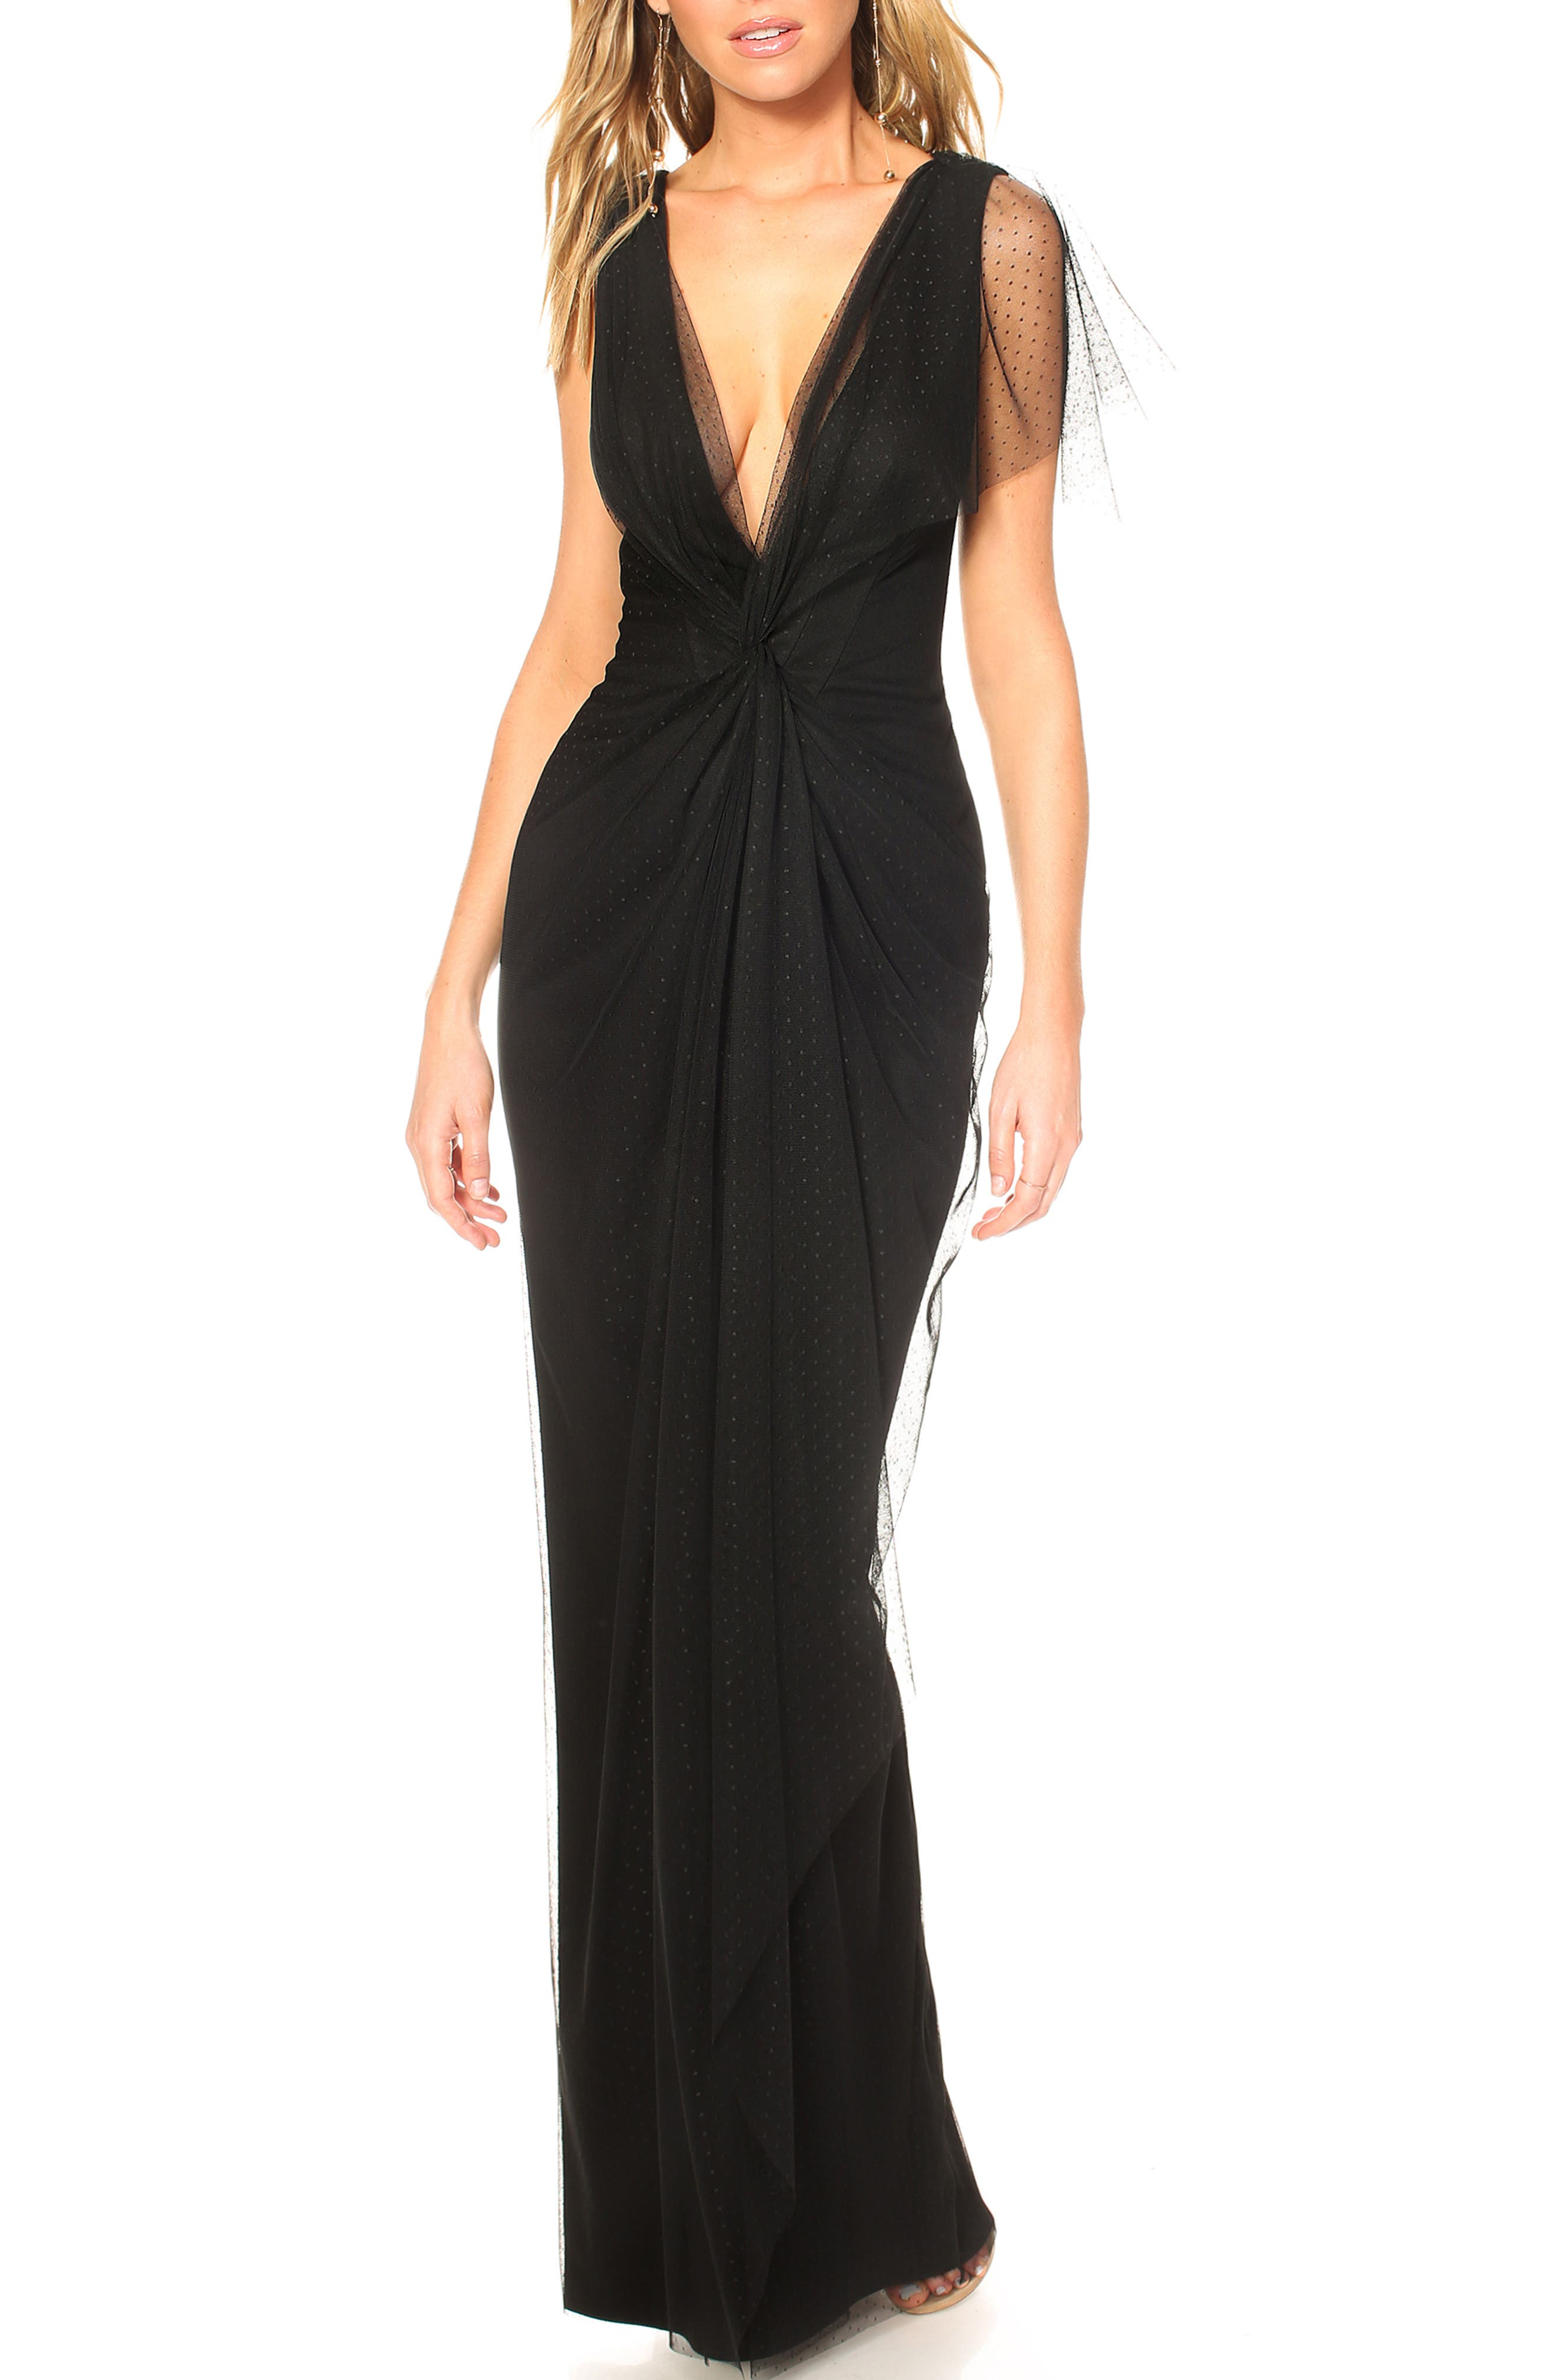 Katie May Olivia Plunge Neck Gown, Black